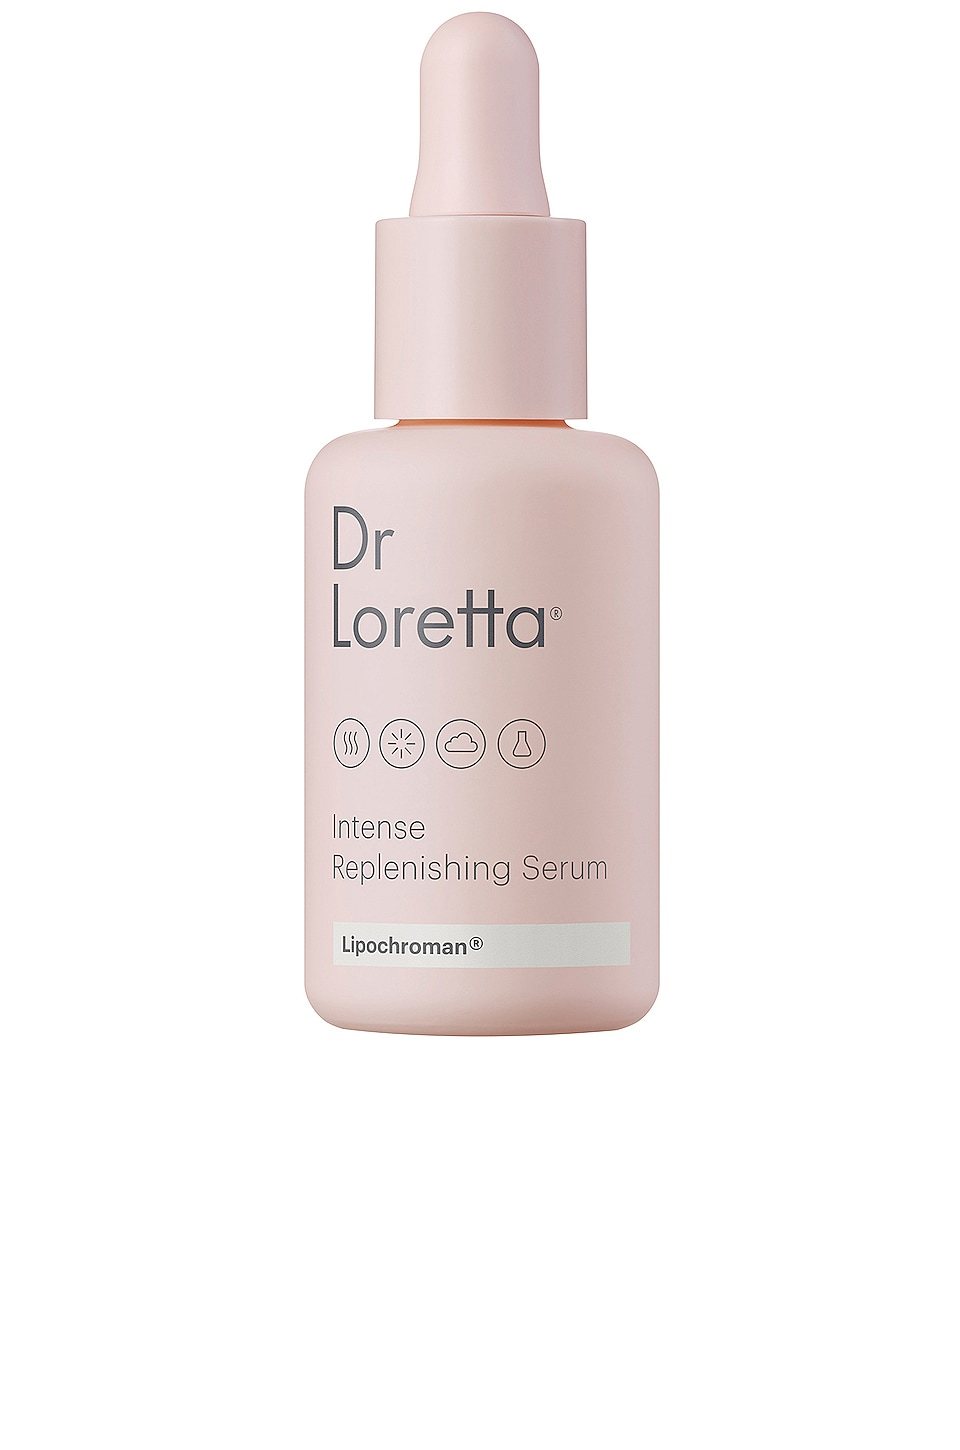 Dr. Loretta Intense Replenishing Serum